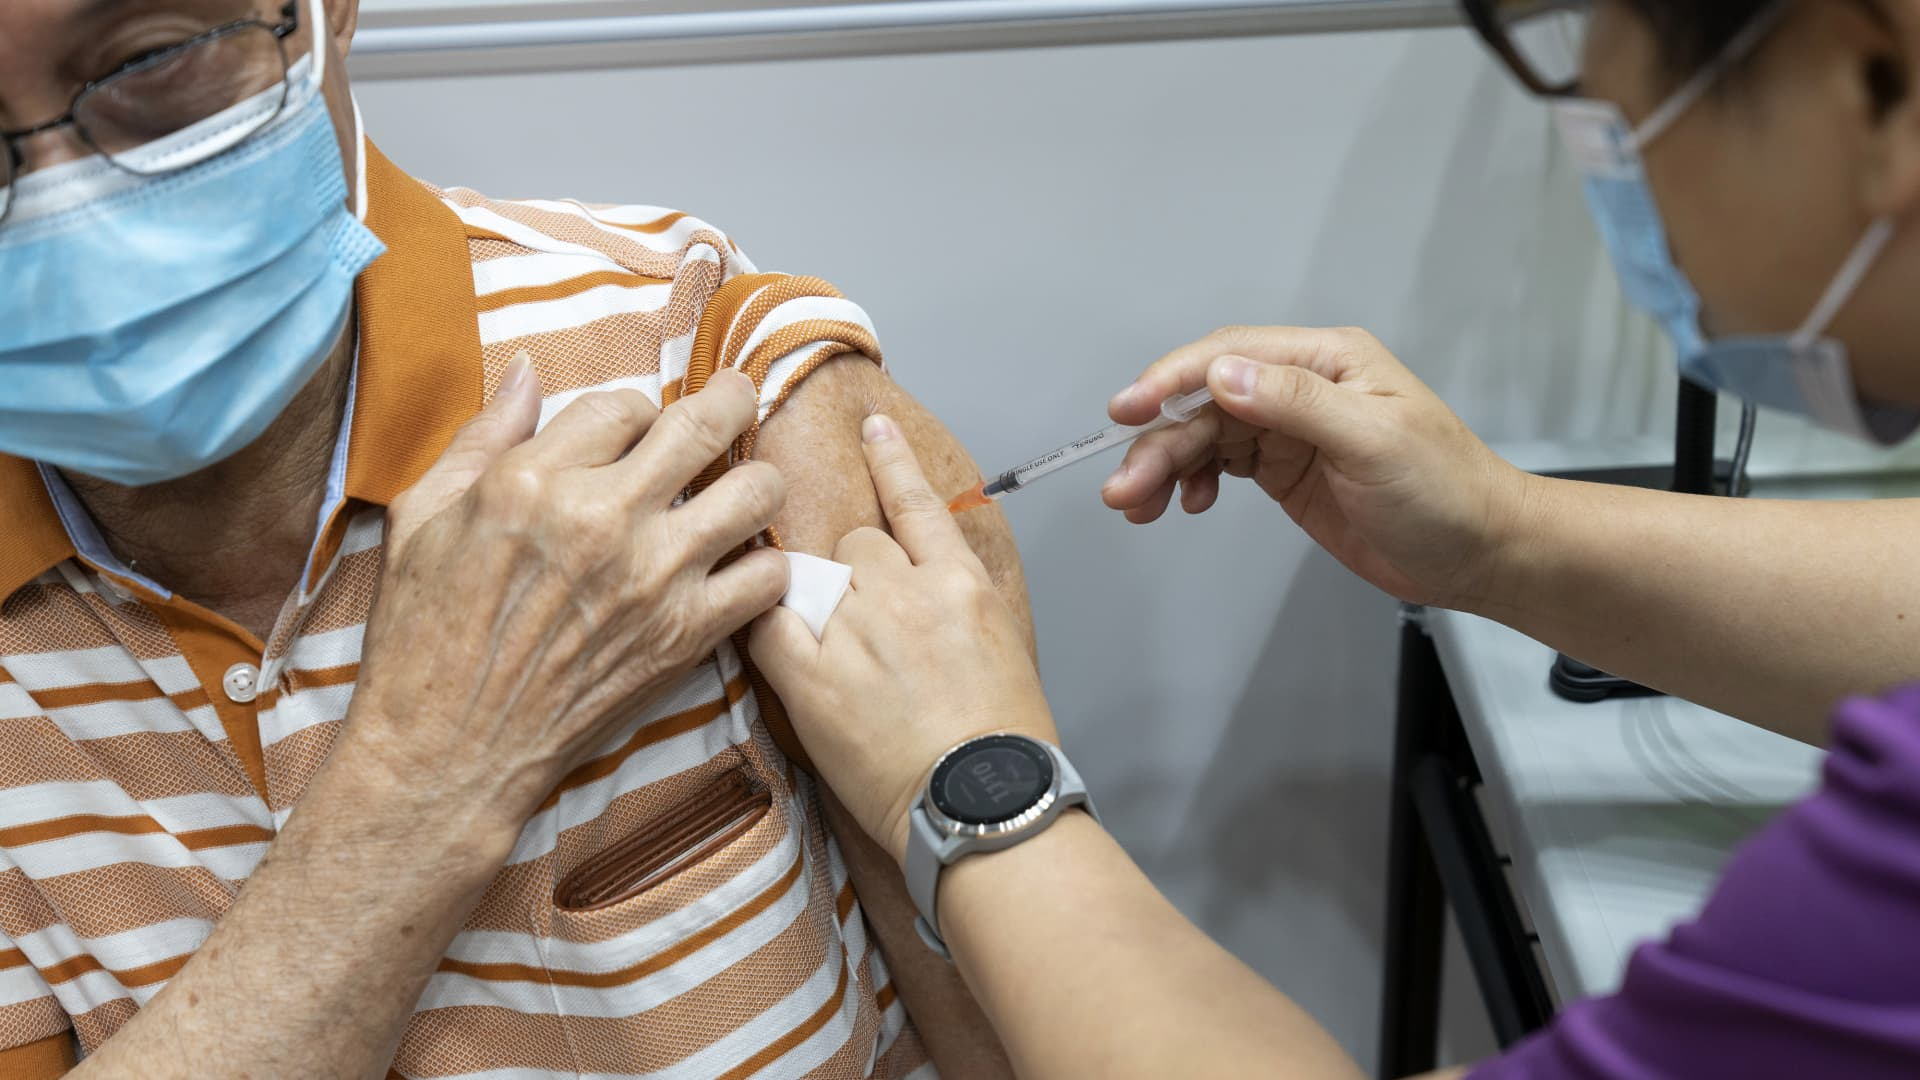 A health worker administers the Pfizer-BioNTech Covid-19 vaccine to a senior citizen at the Senja-Cashew Community Centre Vaccination Centre, operated by Thomson Medical, in Singapore, on Monday, March 8, 2021. Singapore is introducing a program calledConnect@Changithat will allow people to enter the island for business and official purposes without having to quarantine, provided they stay in abubble-like facilitynear Changi Airport for the duration of their visit. Photographer: Wei Leng Tay/Bloomberg via Getty Images